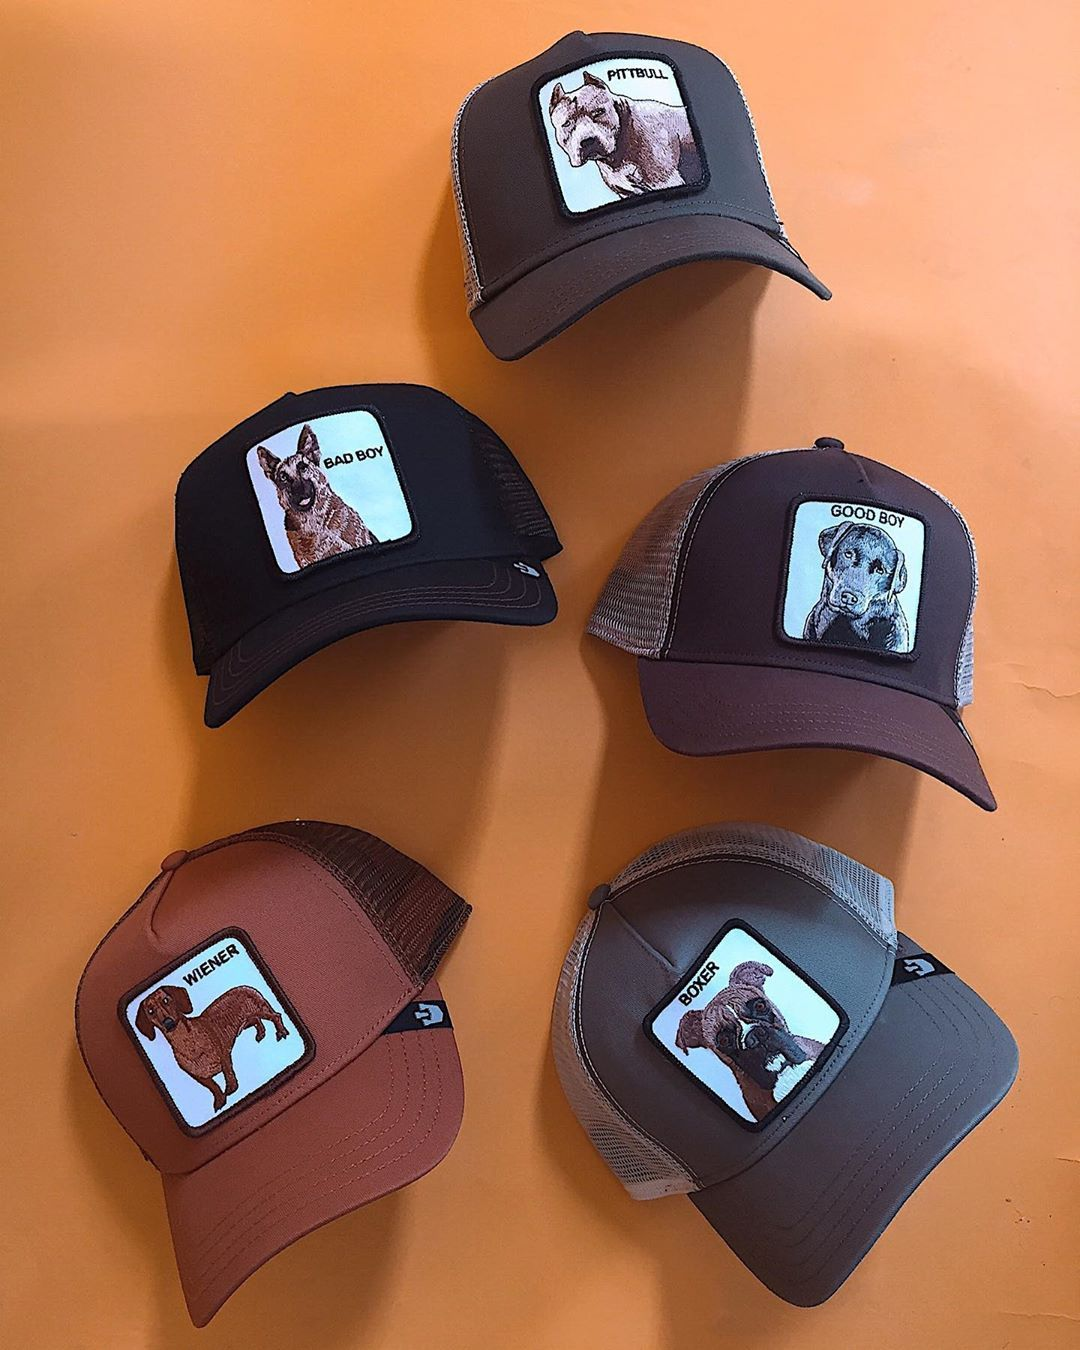 Goorin Bros Bold Hatmakers On Instagram Hot Diggity Dog These New Bad Boys Will Be Ready For Their Loving Homes In A Couple Months En 2021 Gorras Famosos